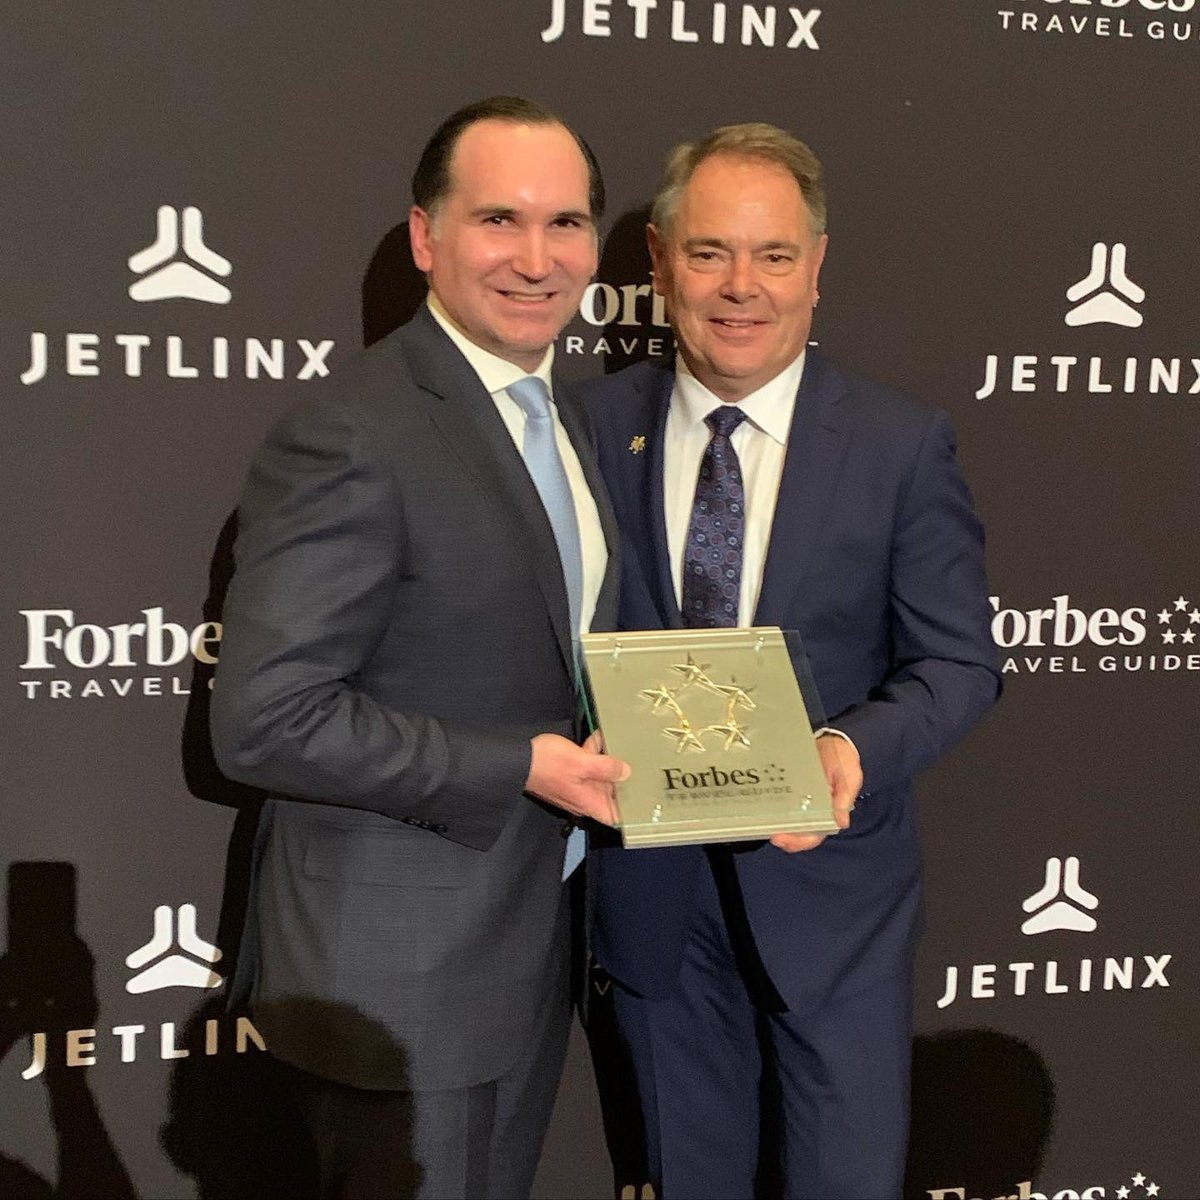 An honor to receive our 2020 5 star award from @ForbesInspector CEO, @FilipBoyen last night. Congratulations to all our @TrumpDC associates for one more time achieving the most coveted and respected award in the hotel industry...#Trump #onlyfivestarhoteldowntowndc #success